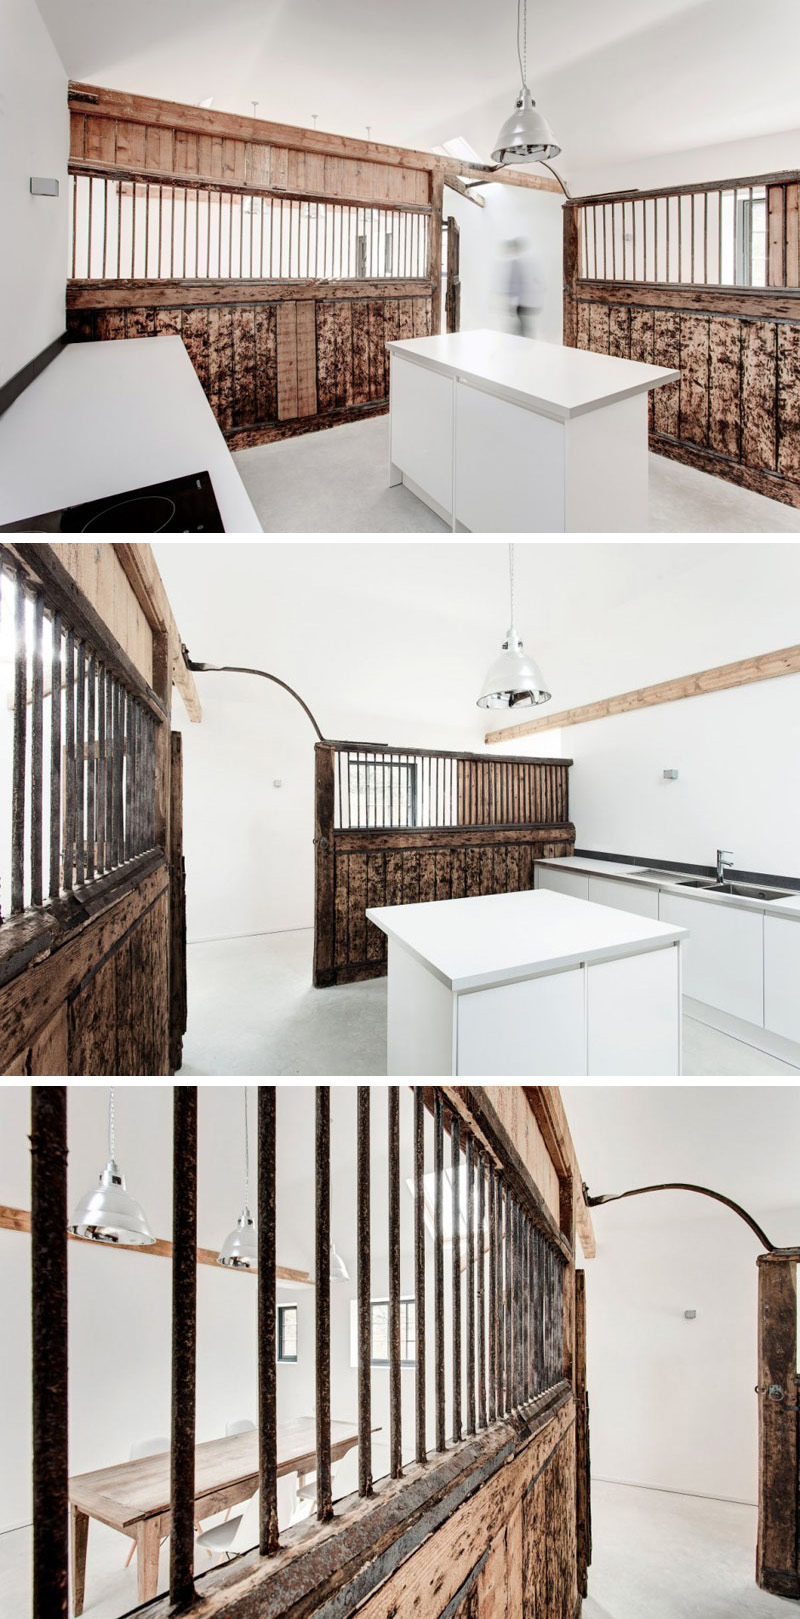 These Old Horse Stables Have Been Transformed Into A Minimalist Home